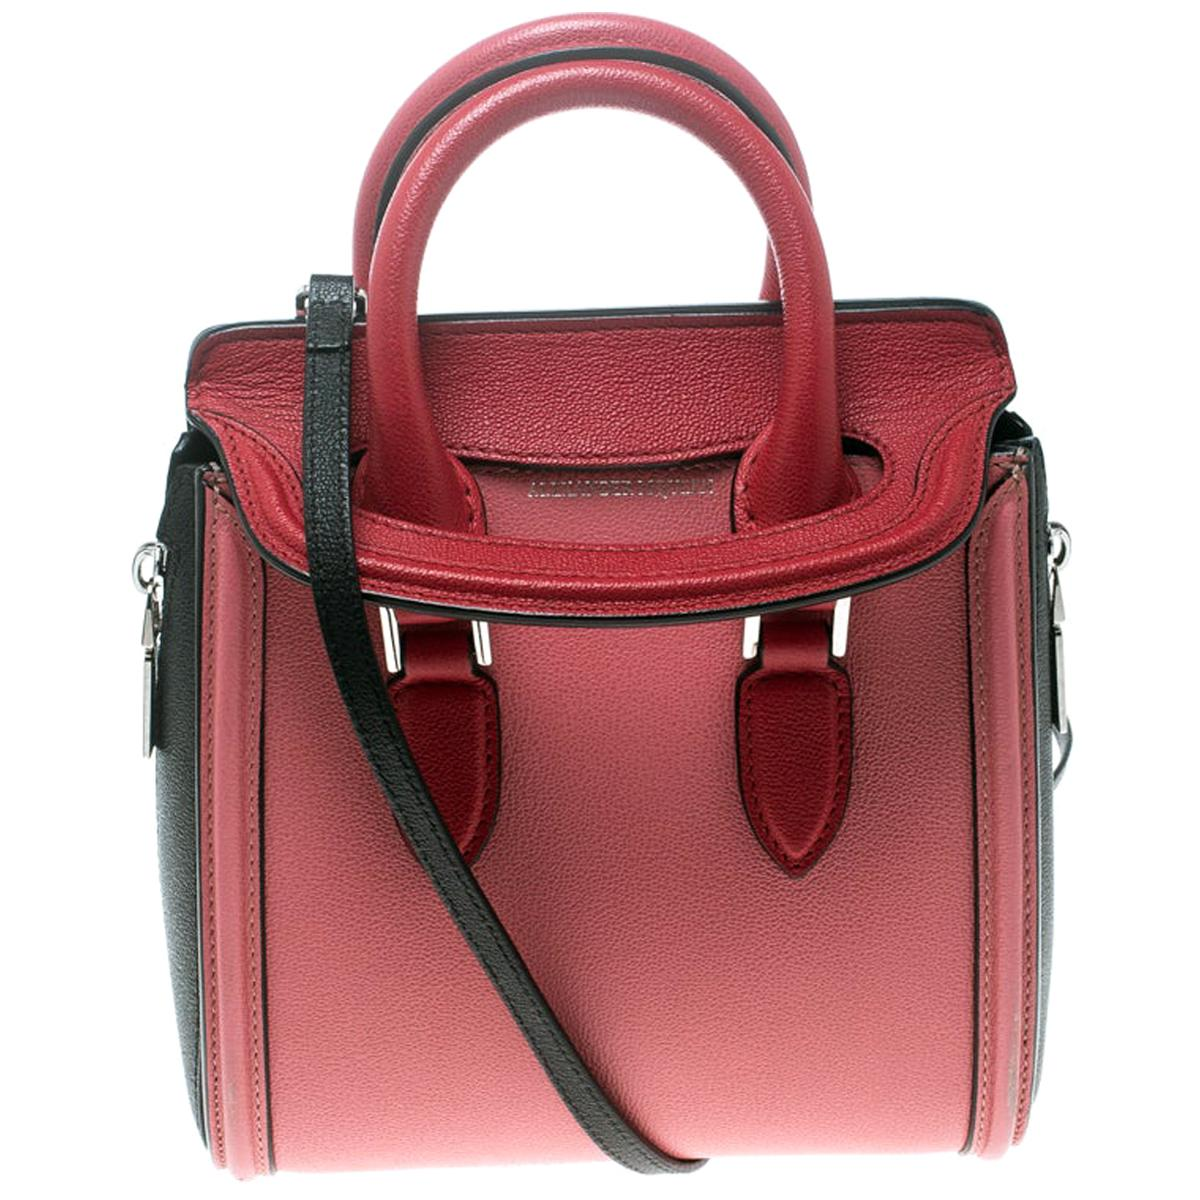 c8030c18e32 Vintage Alexander McQueen Fashion: Clothing, Bags & More - 936 For ...